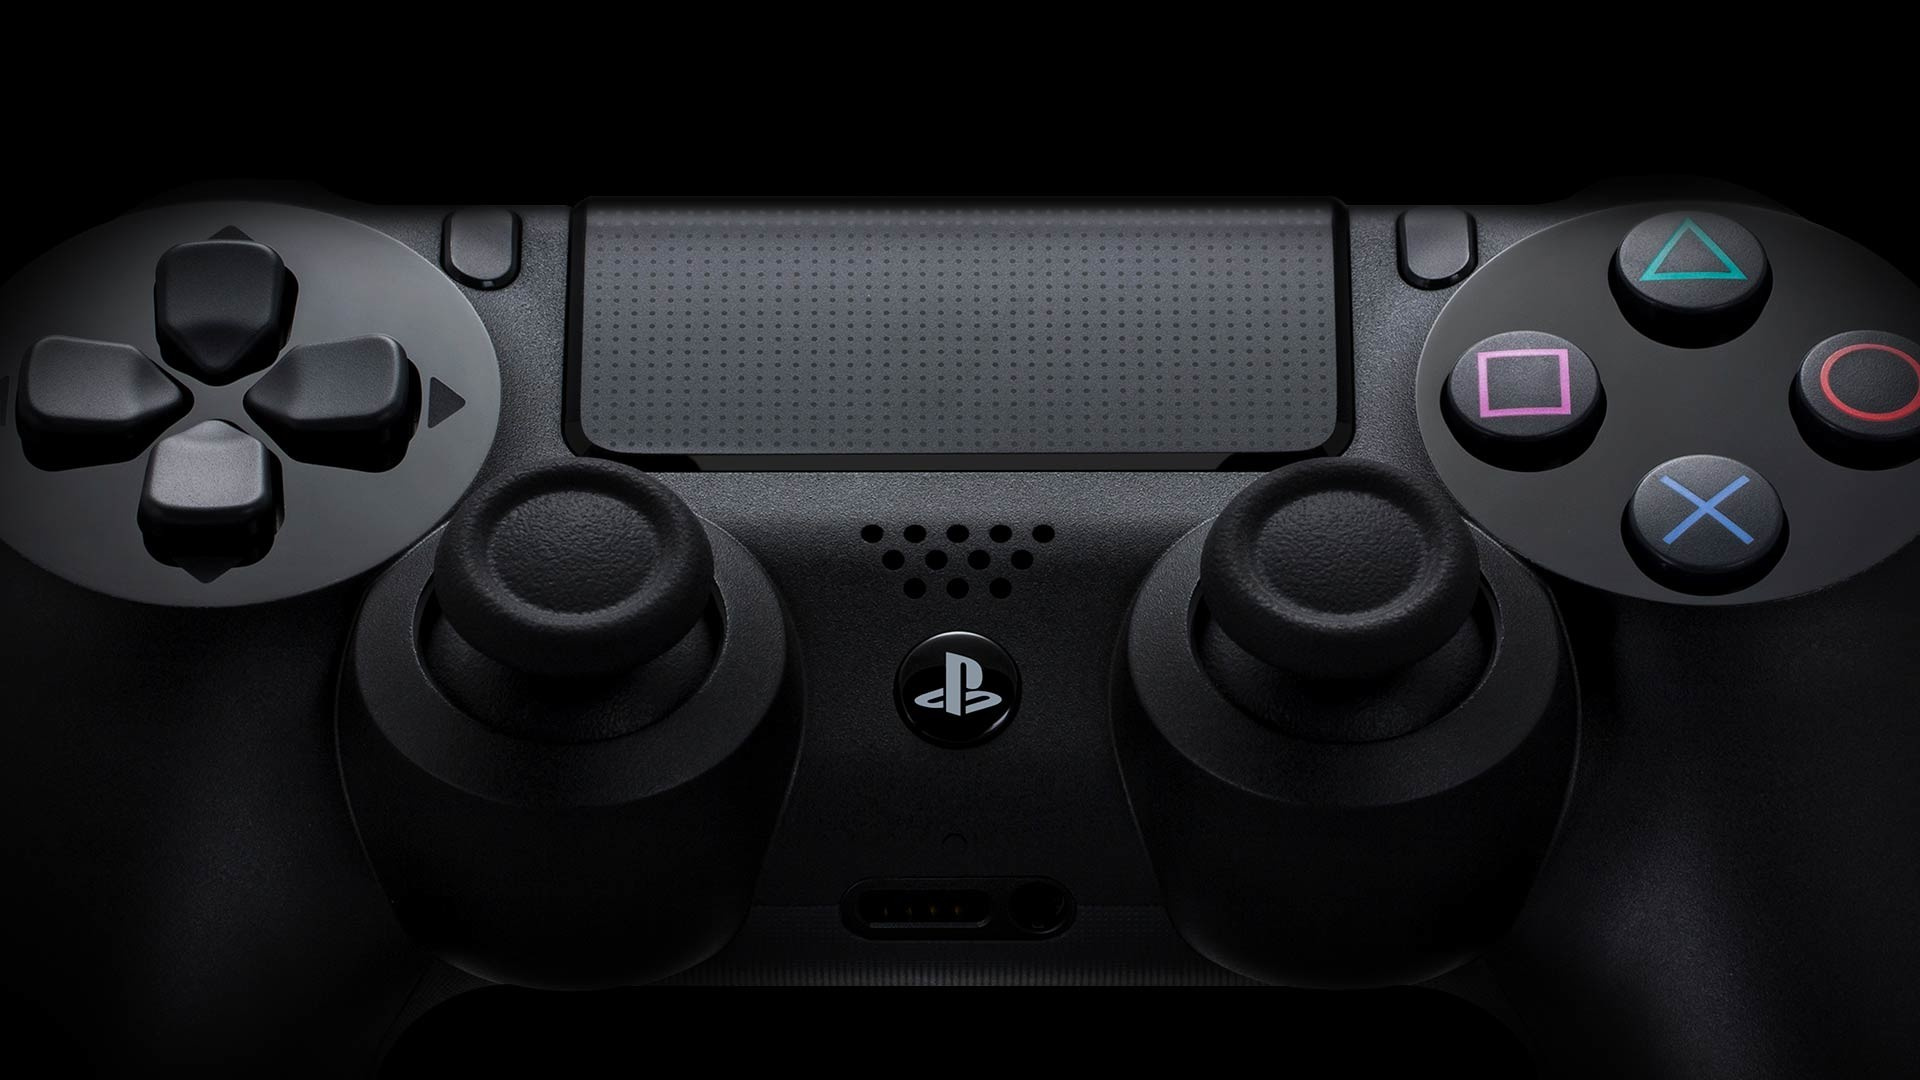 Could the PS5 Controller's Microphone Change the State of Game Guides Forever?